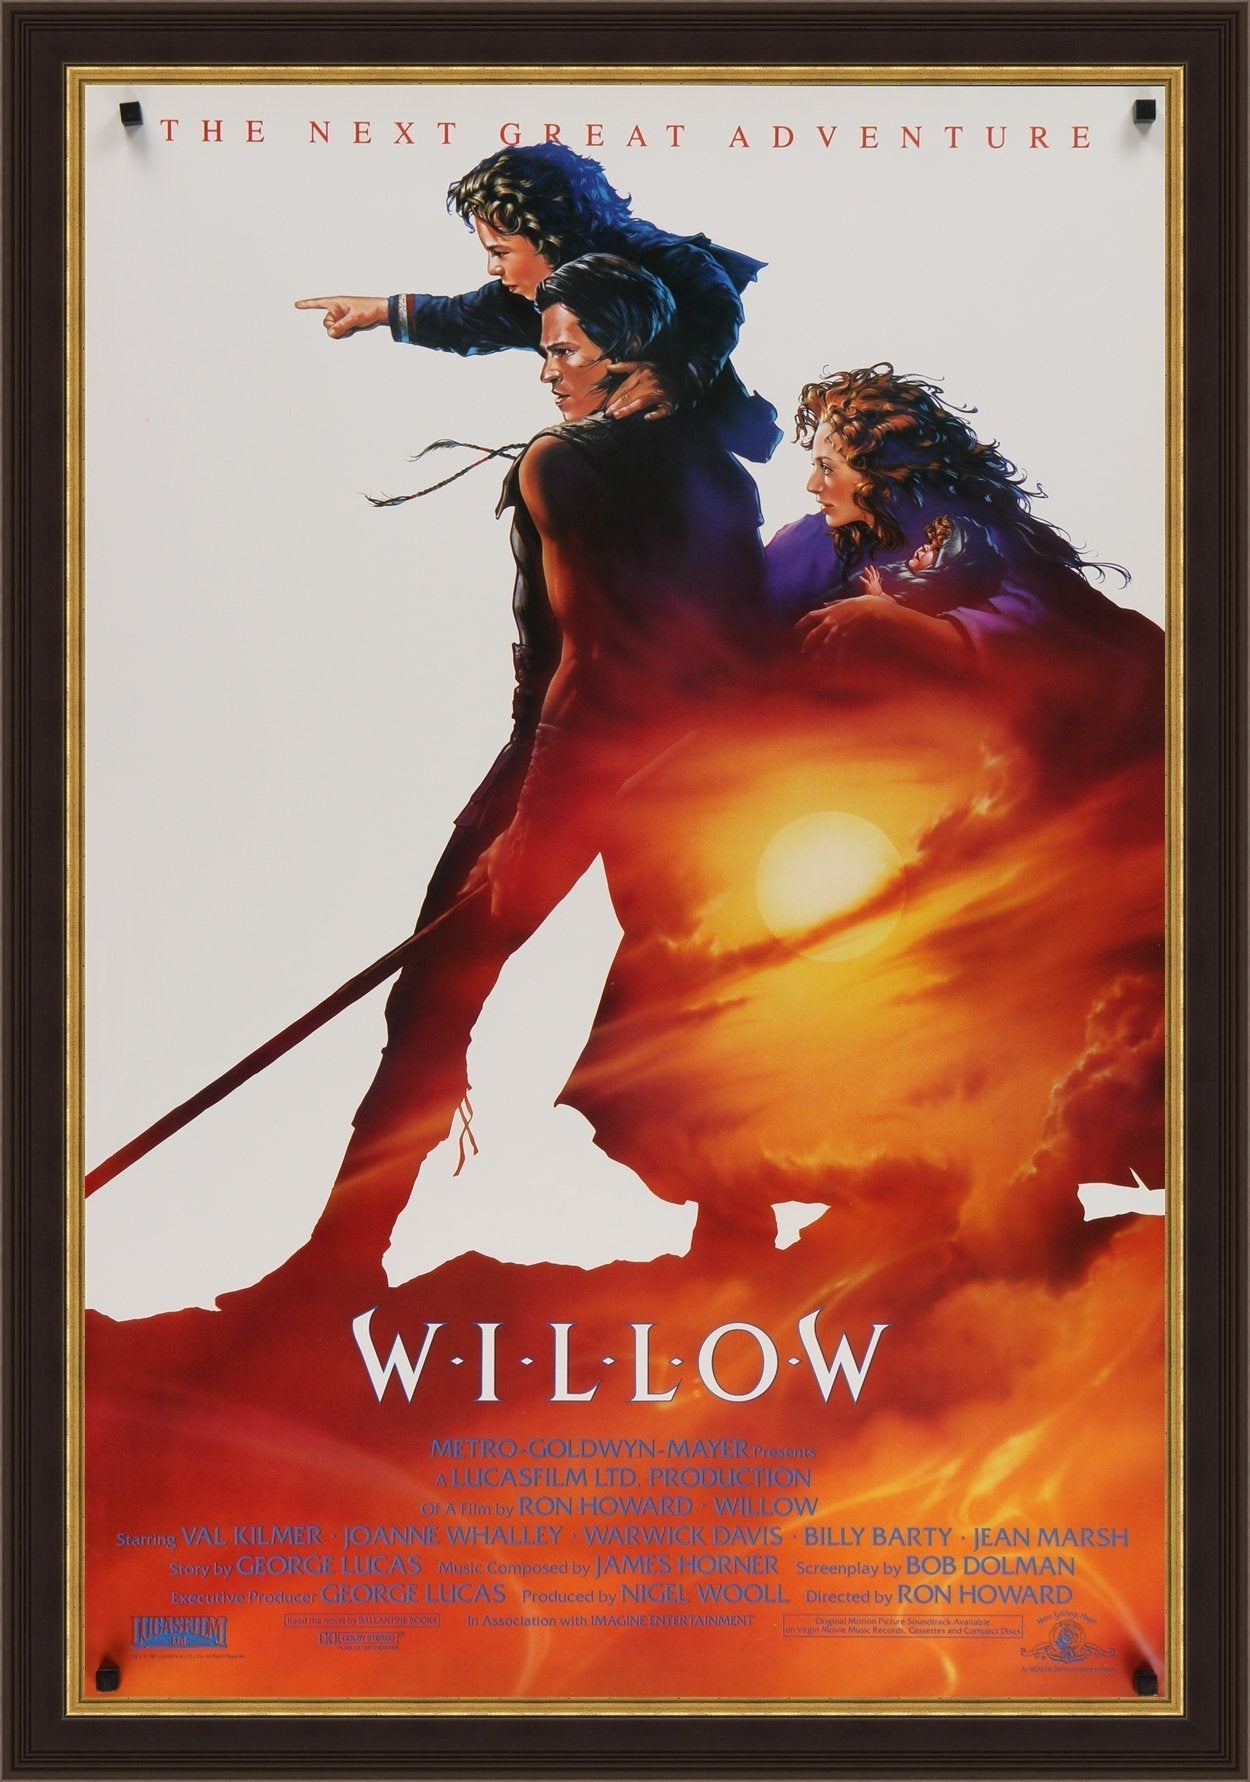 An original movie poster for the film Willow